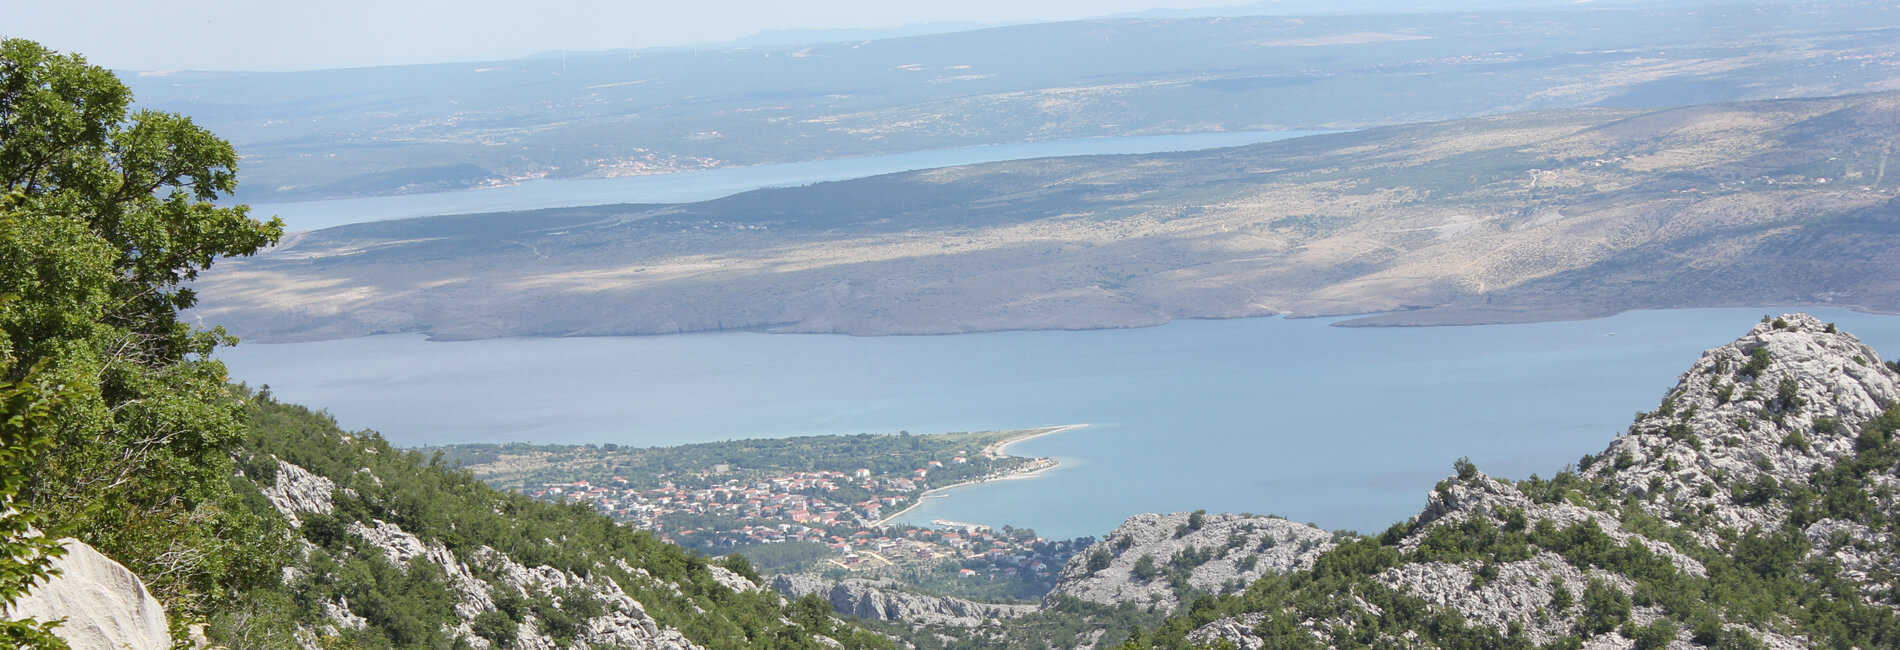 Camping in Starigrad Paklenica | Adria Camps